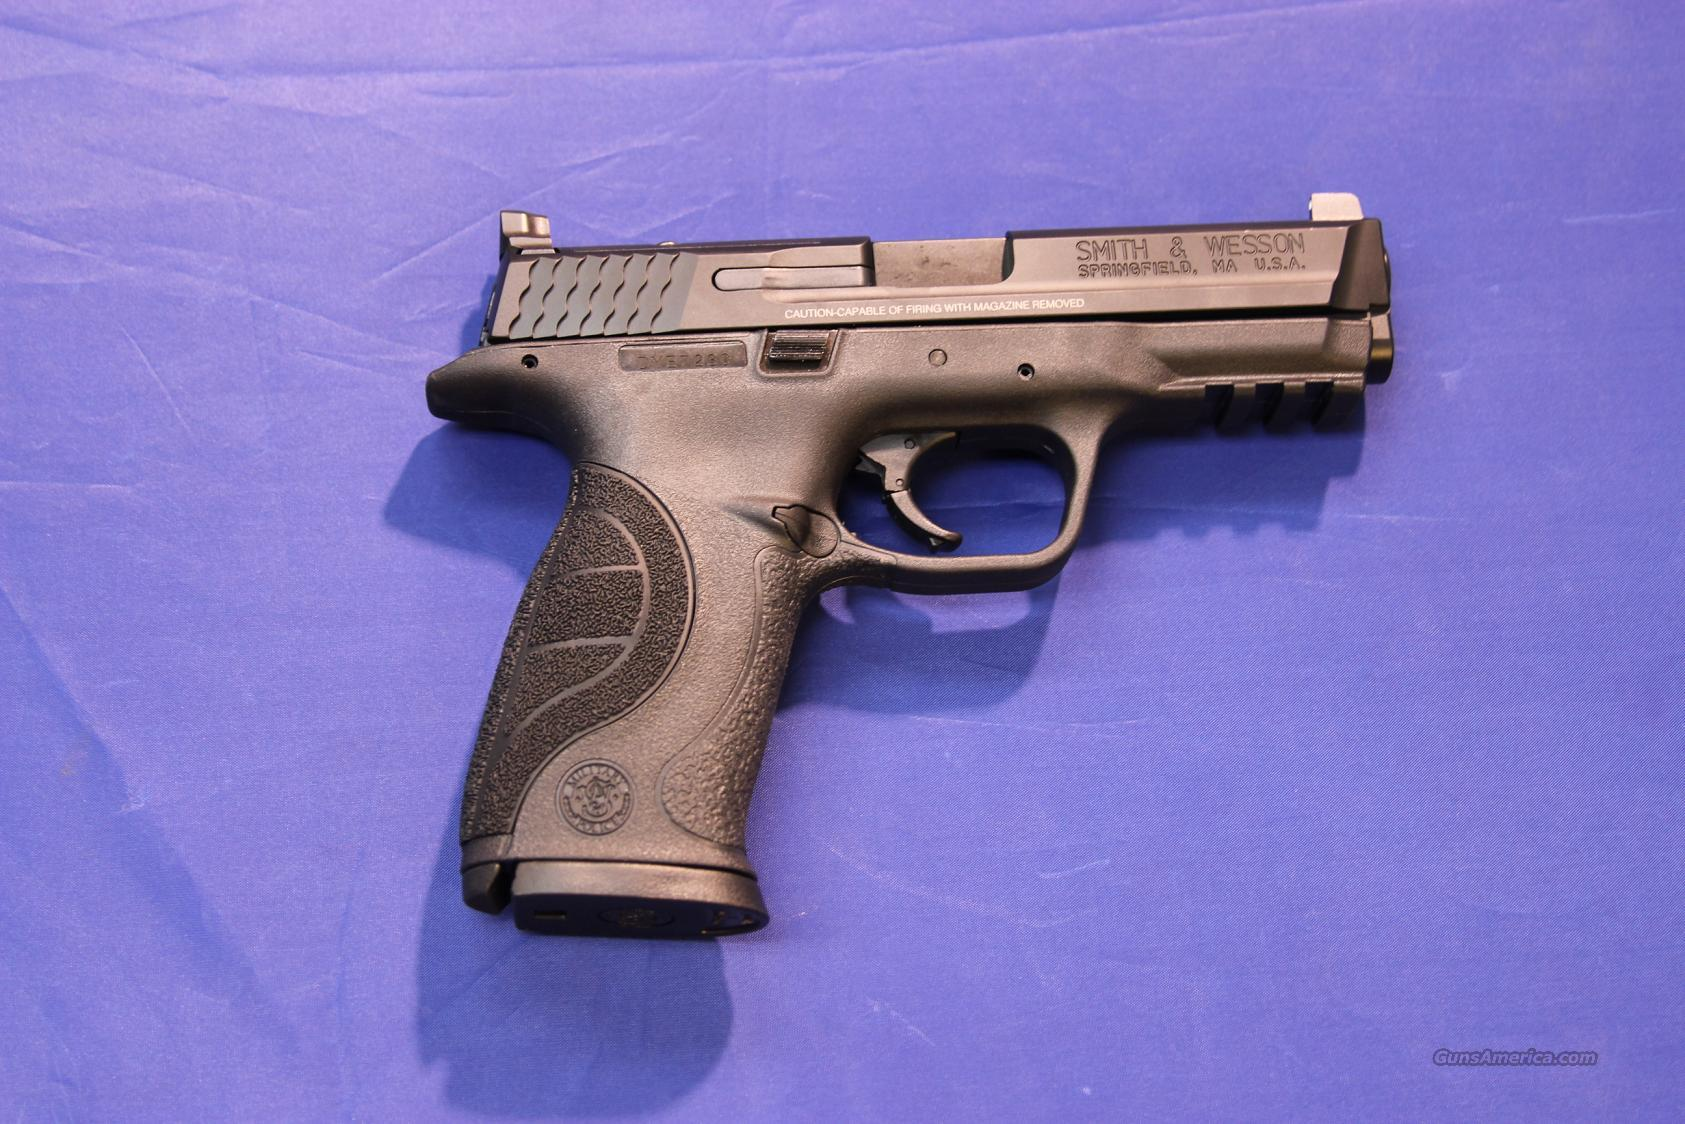 SMITH & WESSON M&P CORE .40S&W - NEW!  Guns > Pistols > Smith & Wesson Pistols - Autos > Polymer Frame